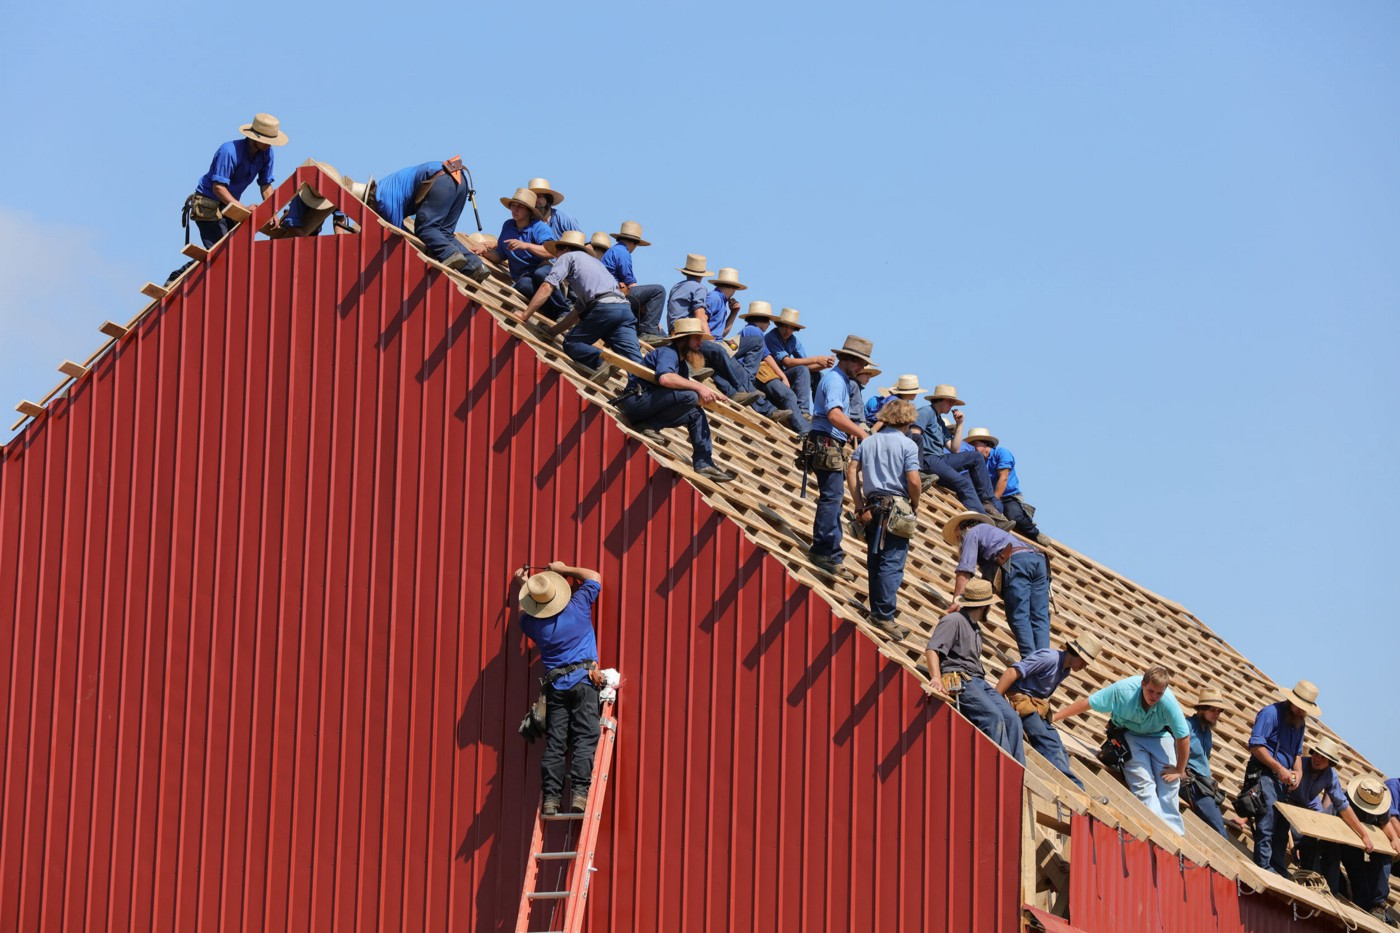 Man on tall ladder and many men roofing a barn